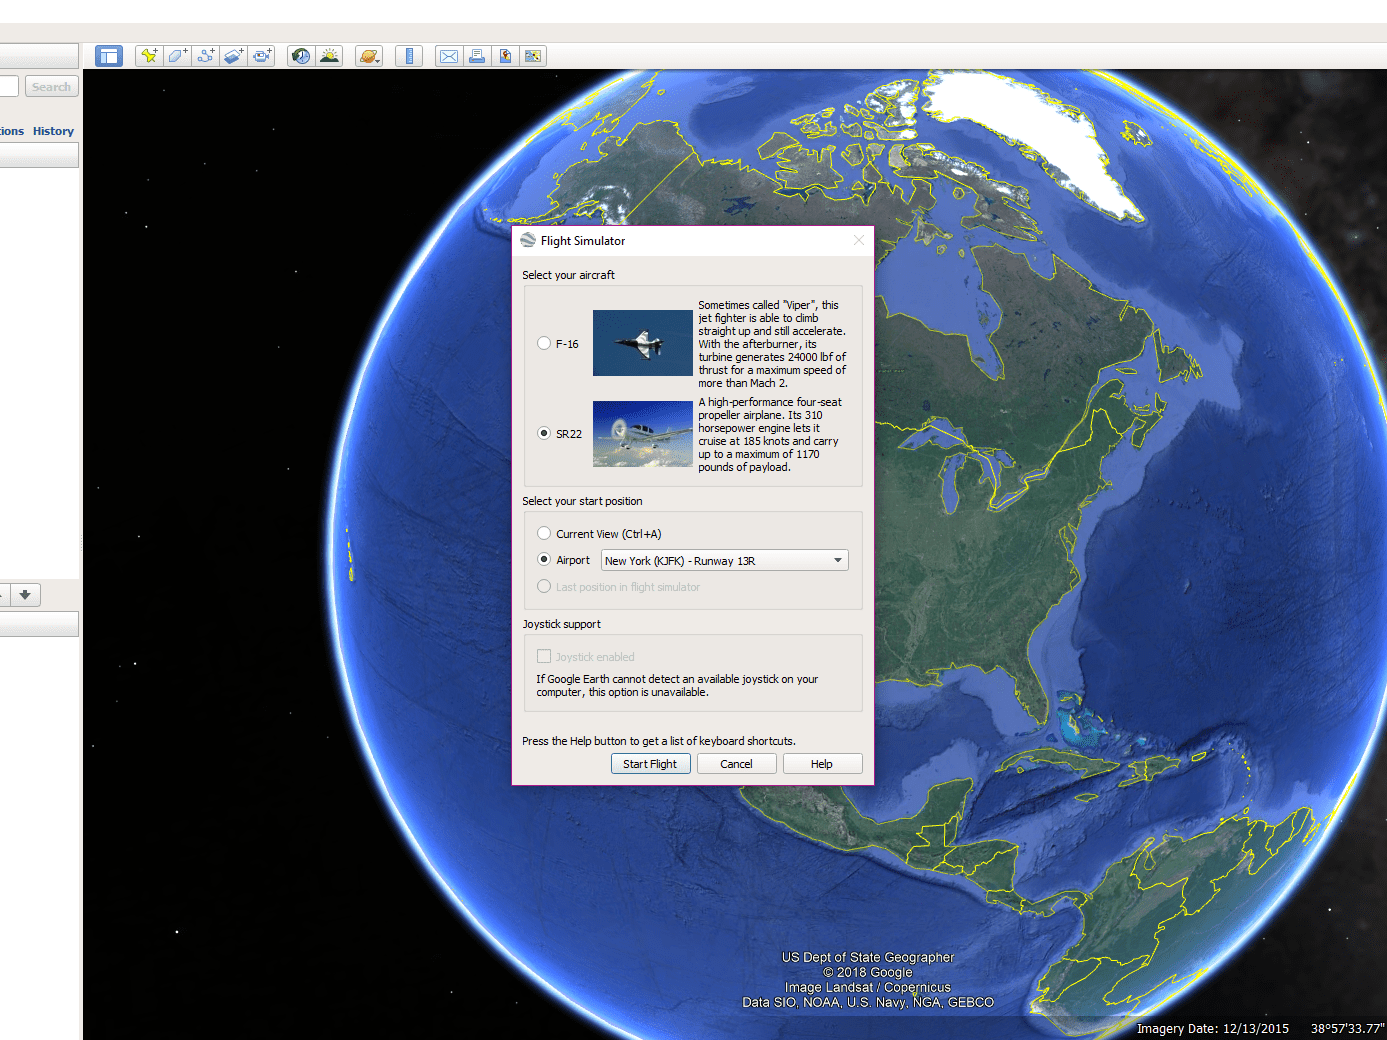 How to Find the Hidden Flight Simulator in Google Earth